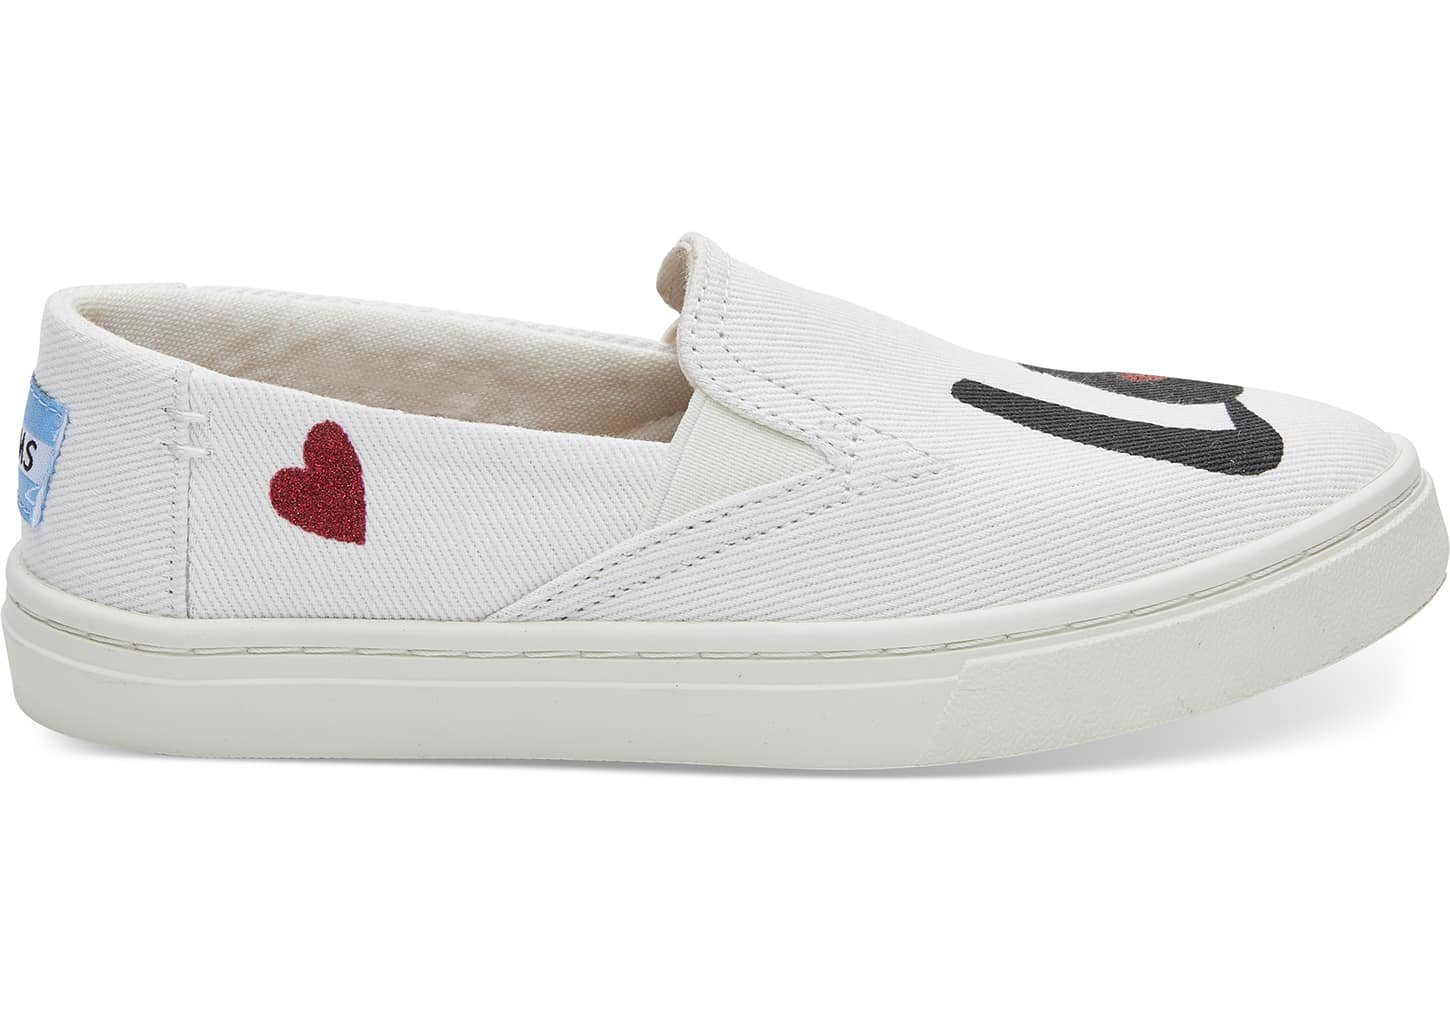 TOMS Youth Luca Slip Ons White Denim Love 10011482 Youth Size 5.5